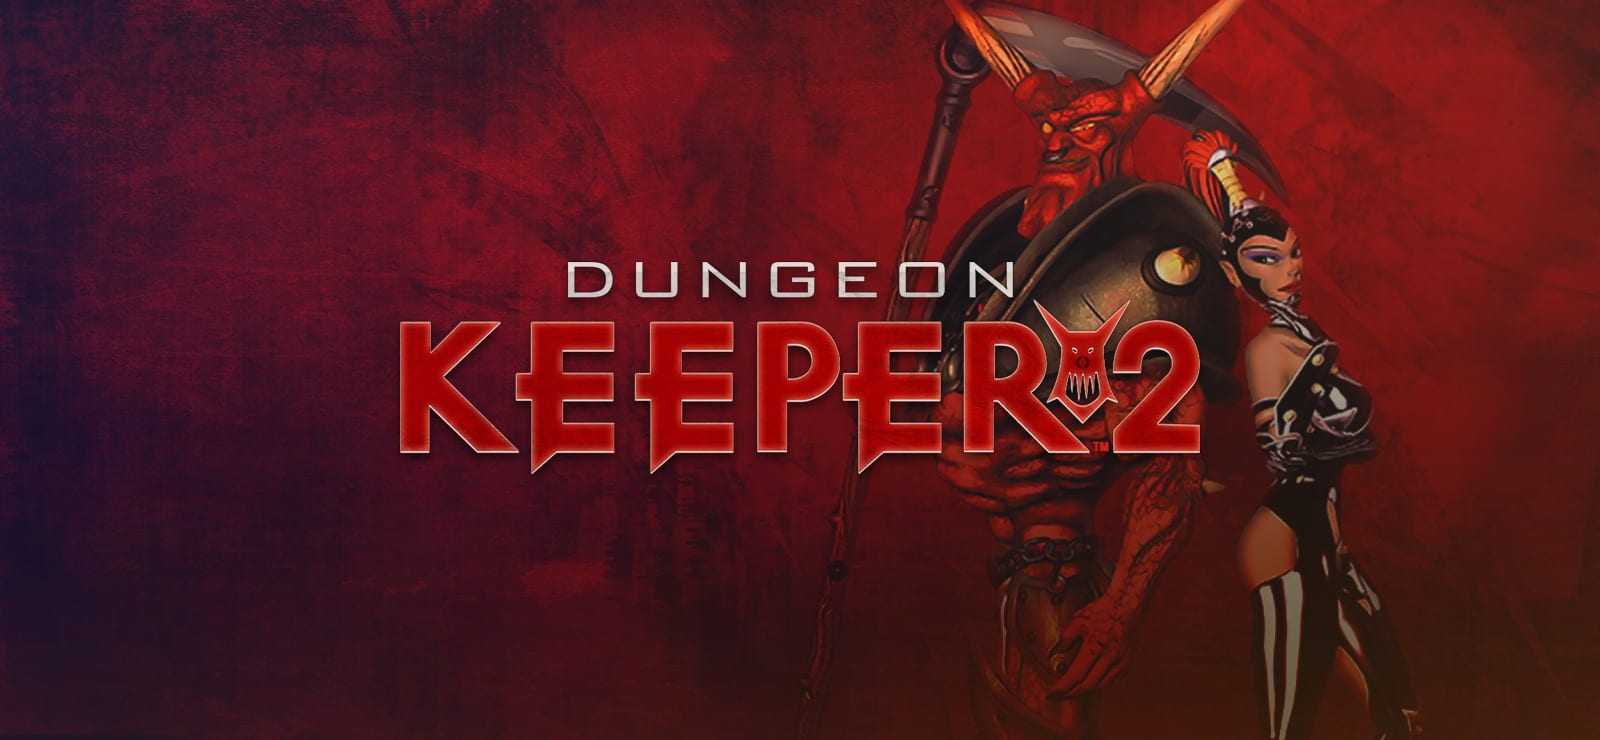 Dungeon Keeper 2 varies-with-device